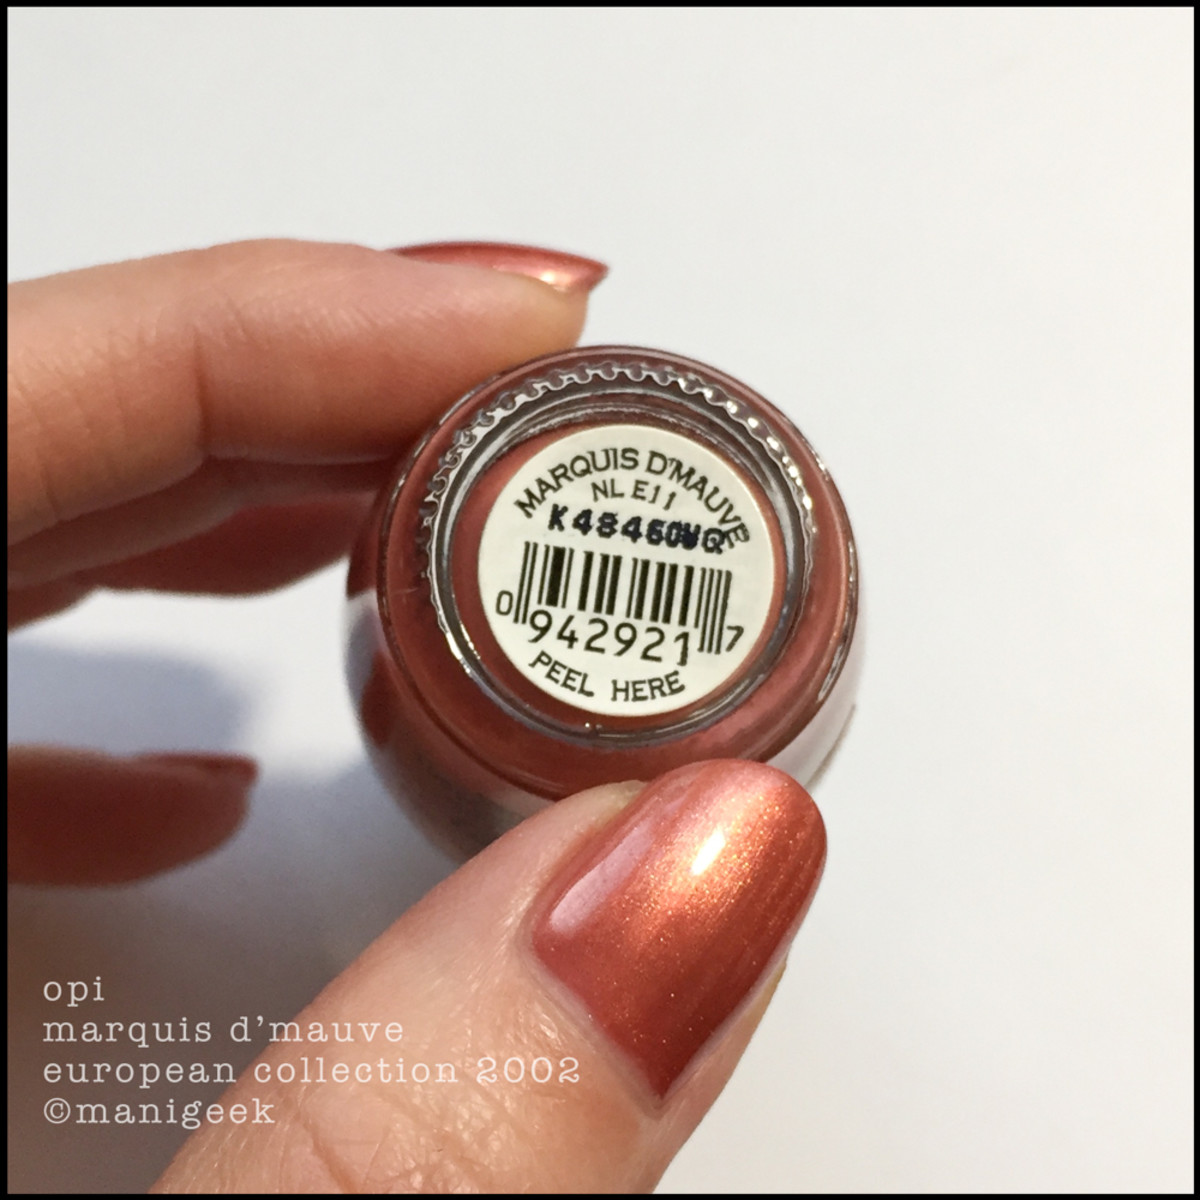 OPI Marquis D'Mauve Black Lavel European Collection 2002